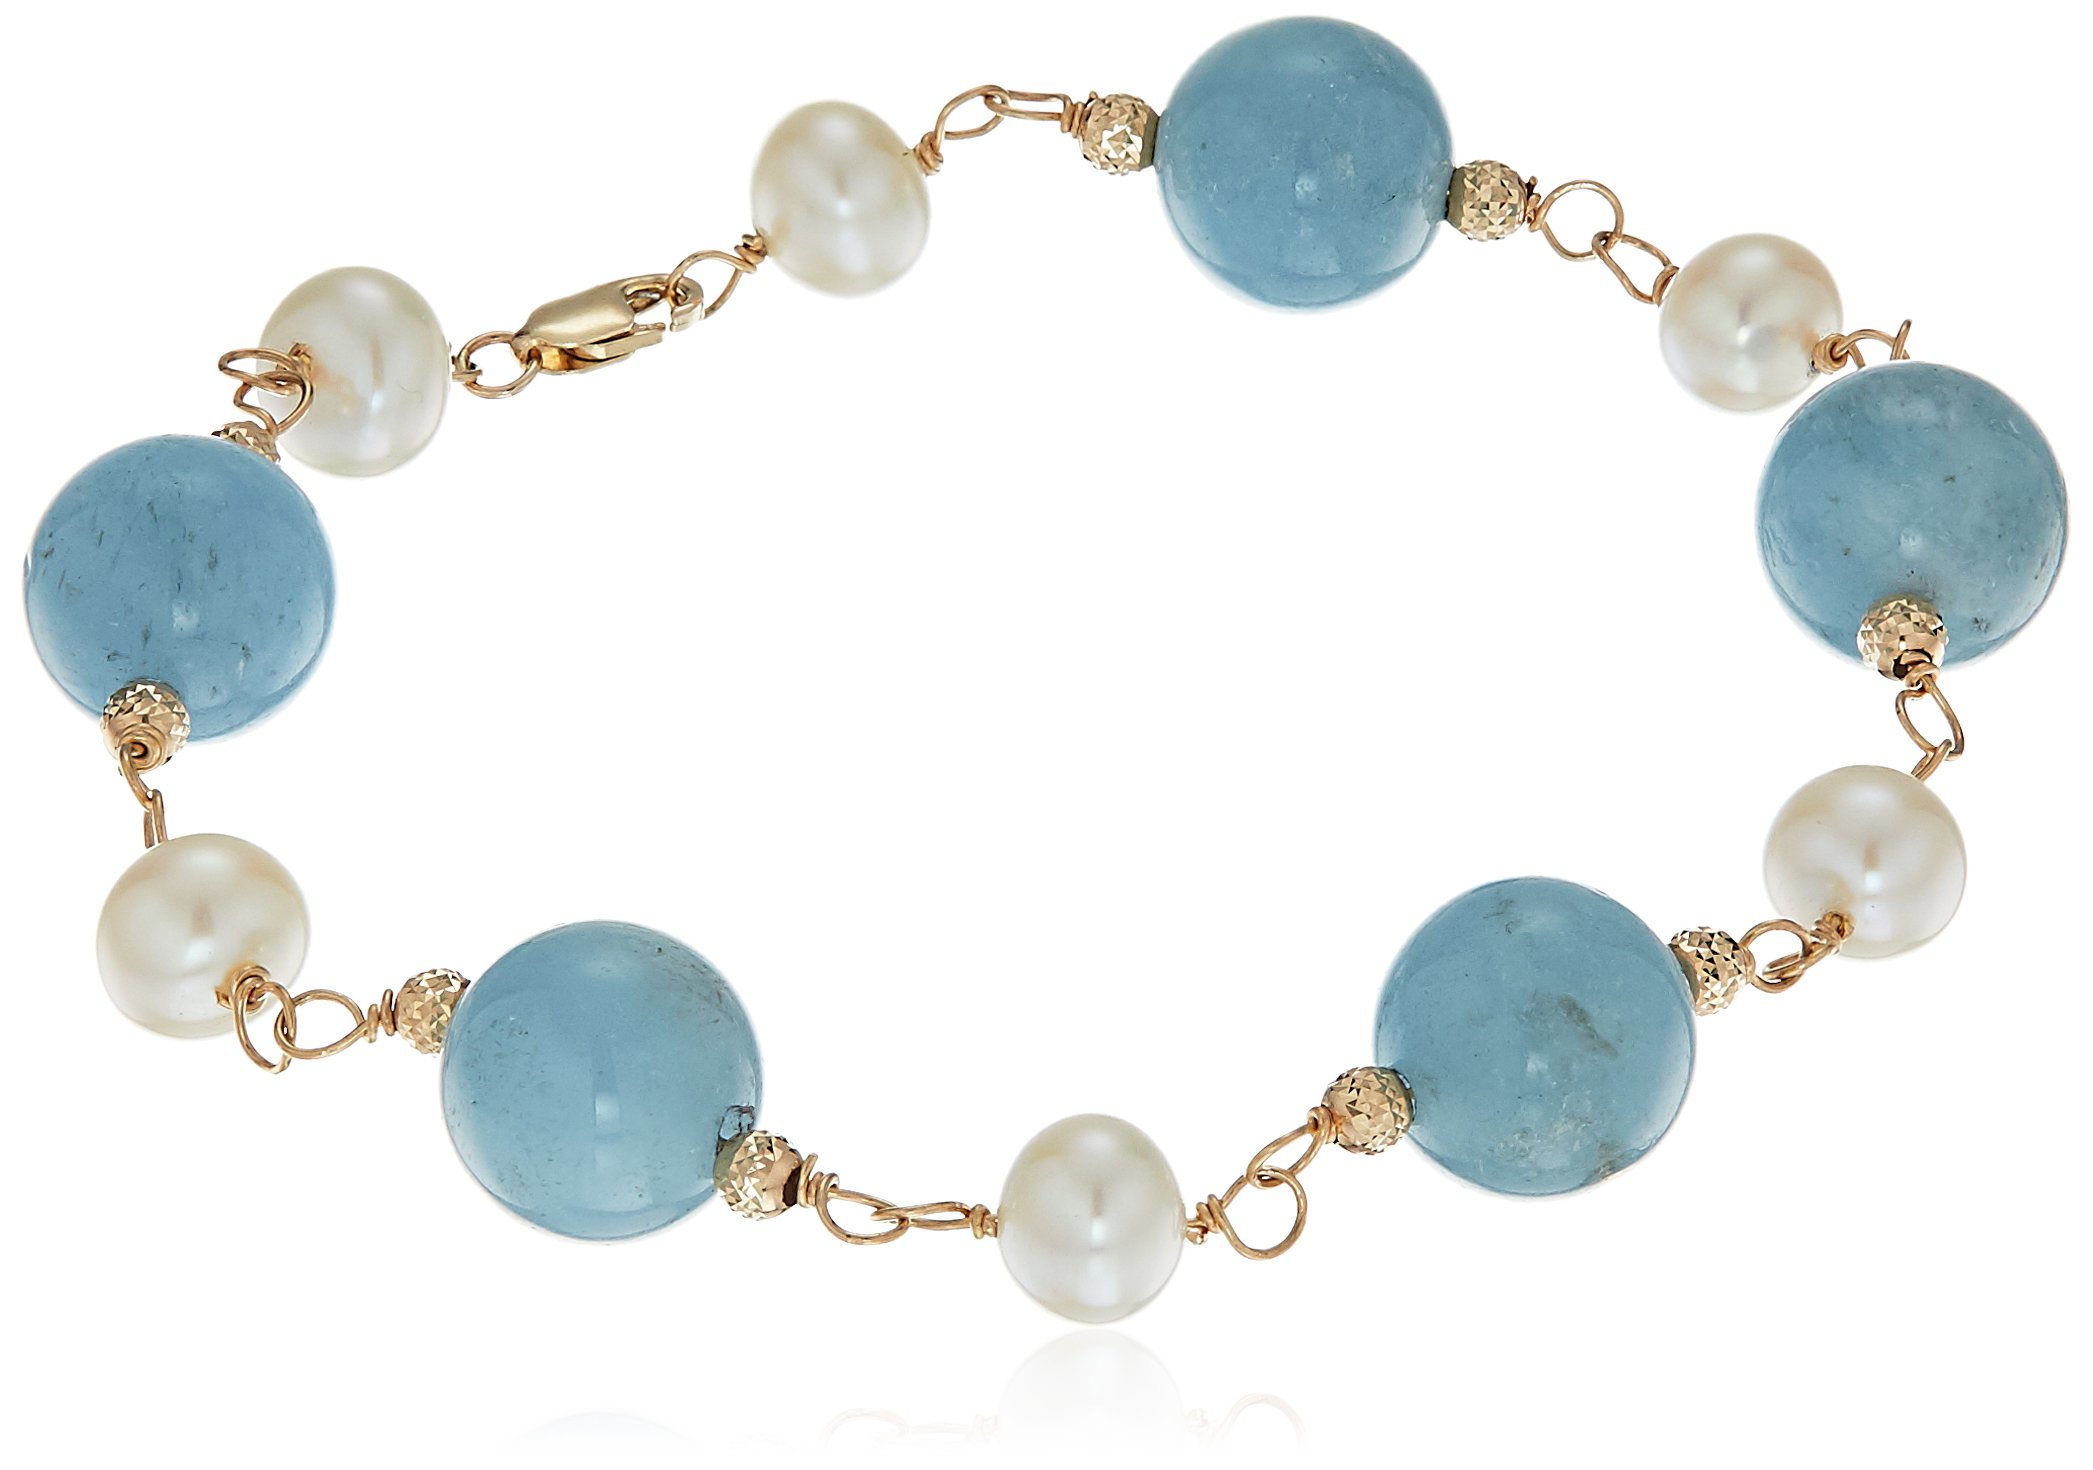 14k Yellow Gold 6.5-7mm White Freshwater Cultured Pearl 10mm Simulated Gemstones Tennis Bracelet, 7.25''